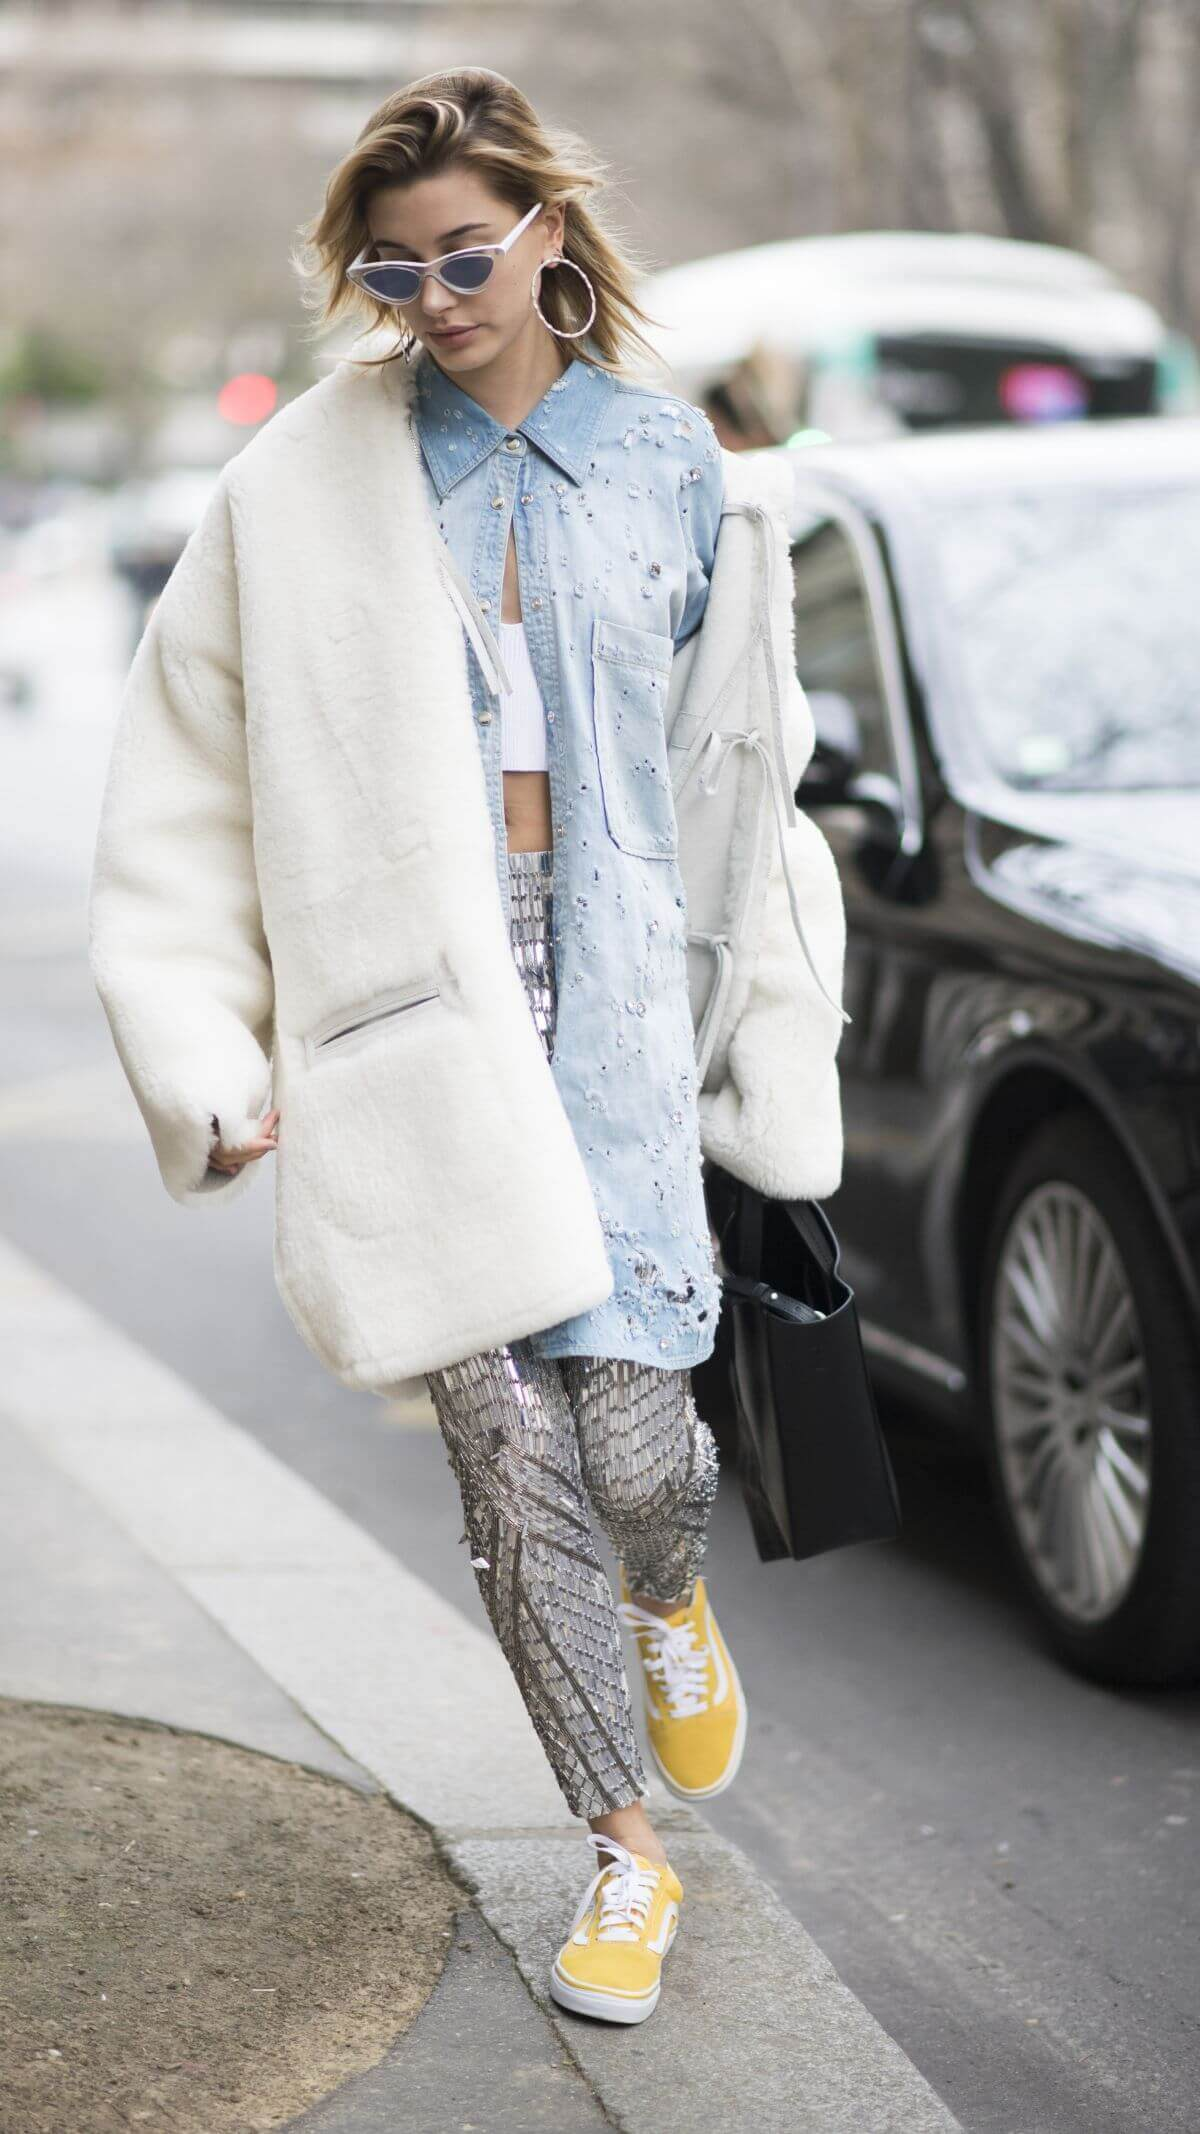 Hailey Rhode Baldwin Stills Out and About in Paris